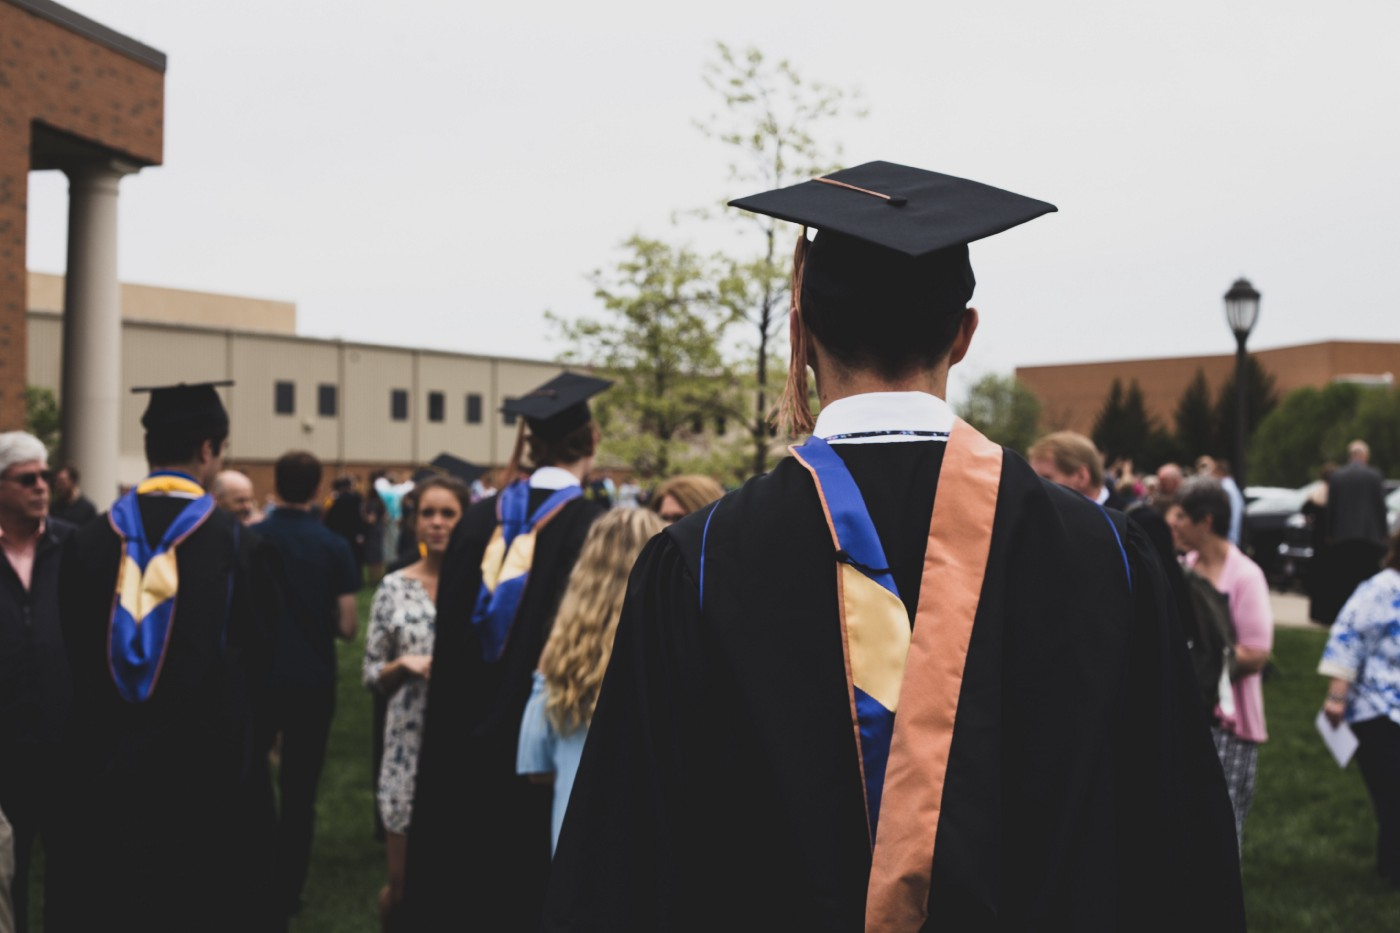 A student in a graduation gown with his back turned to the camera